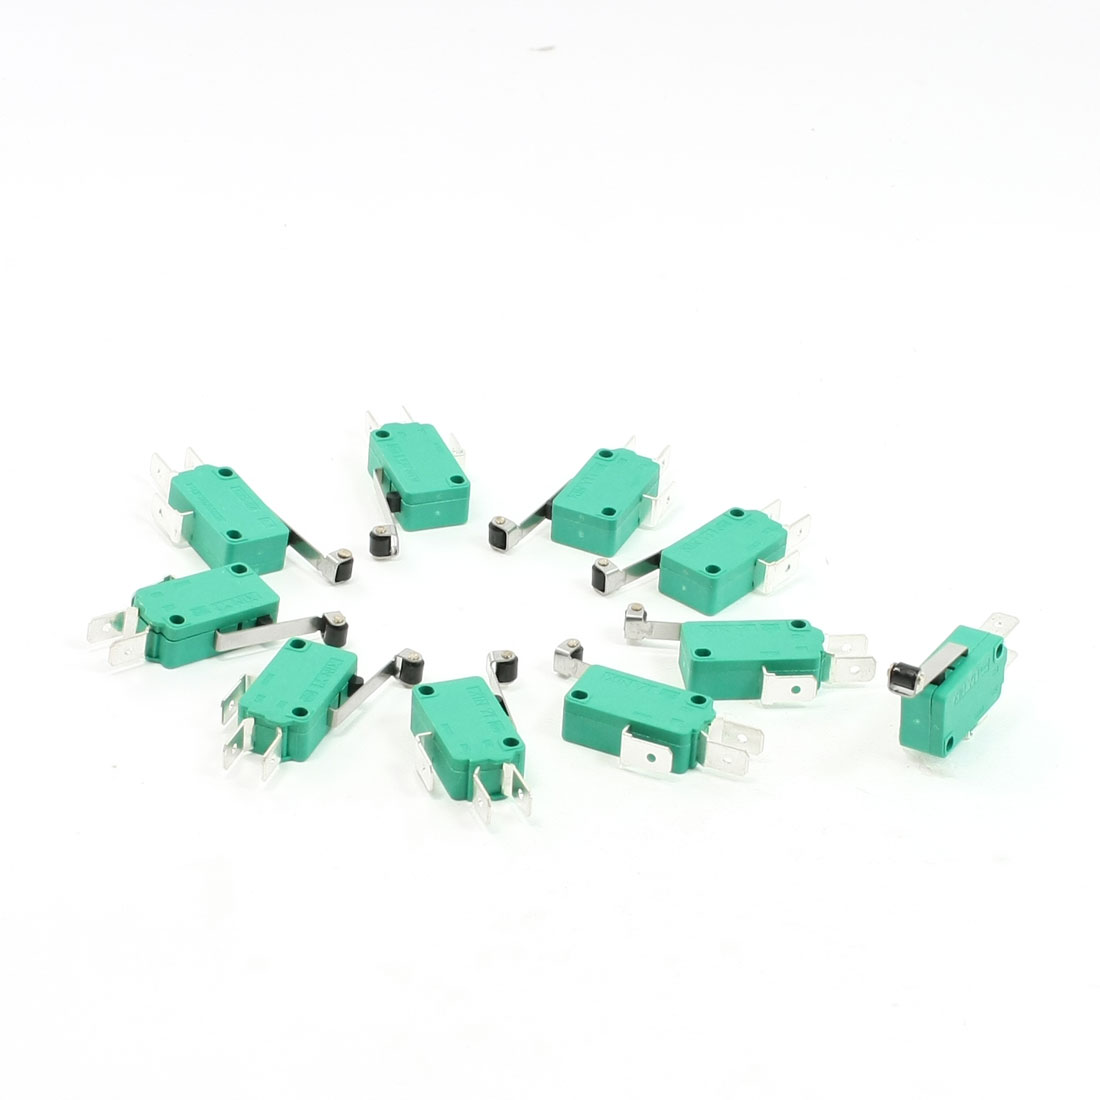 10 Pcs AC 250V 16A SPDT Long Hinge Roller Lever Momentary Micro Switch Green